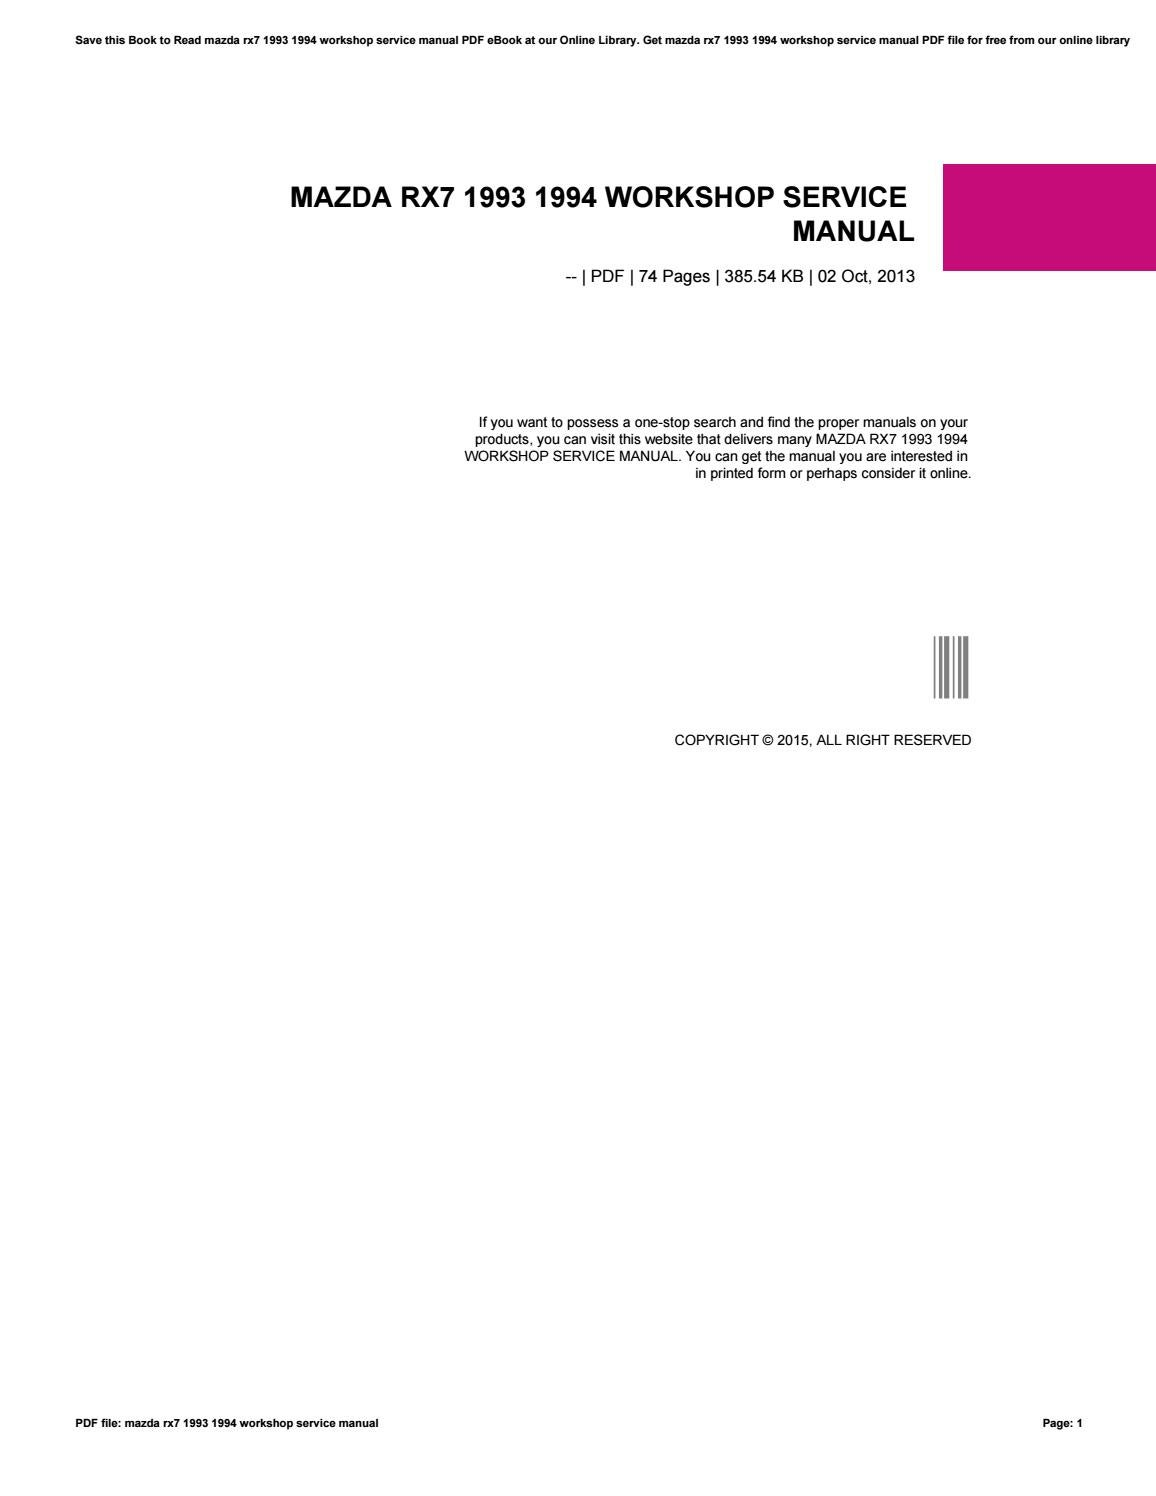 mazda rx7 1993 1994 workshop service manual by kazelink437 issuu rh issuu com 2002 ECU L4 2.2L Wiring-Diagram 83 Mazda B2000 Wiring-Diagram